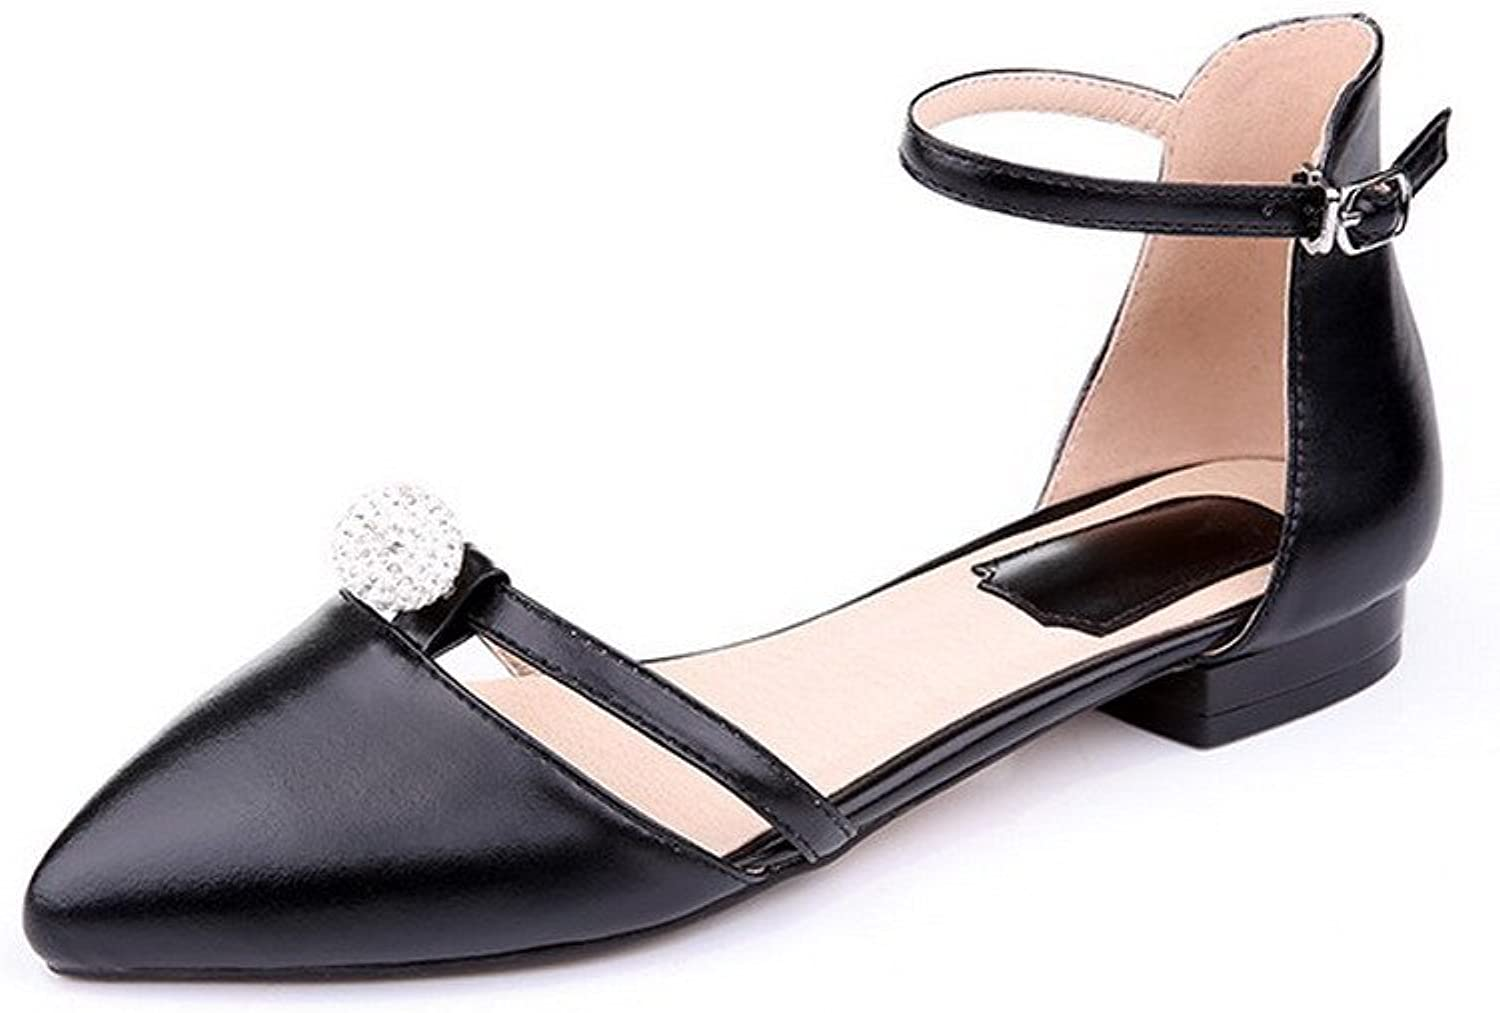 AmoonyFashion Women's Buckle Closed Toe Low-Heels Cow Leather Solid Sandals